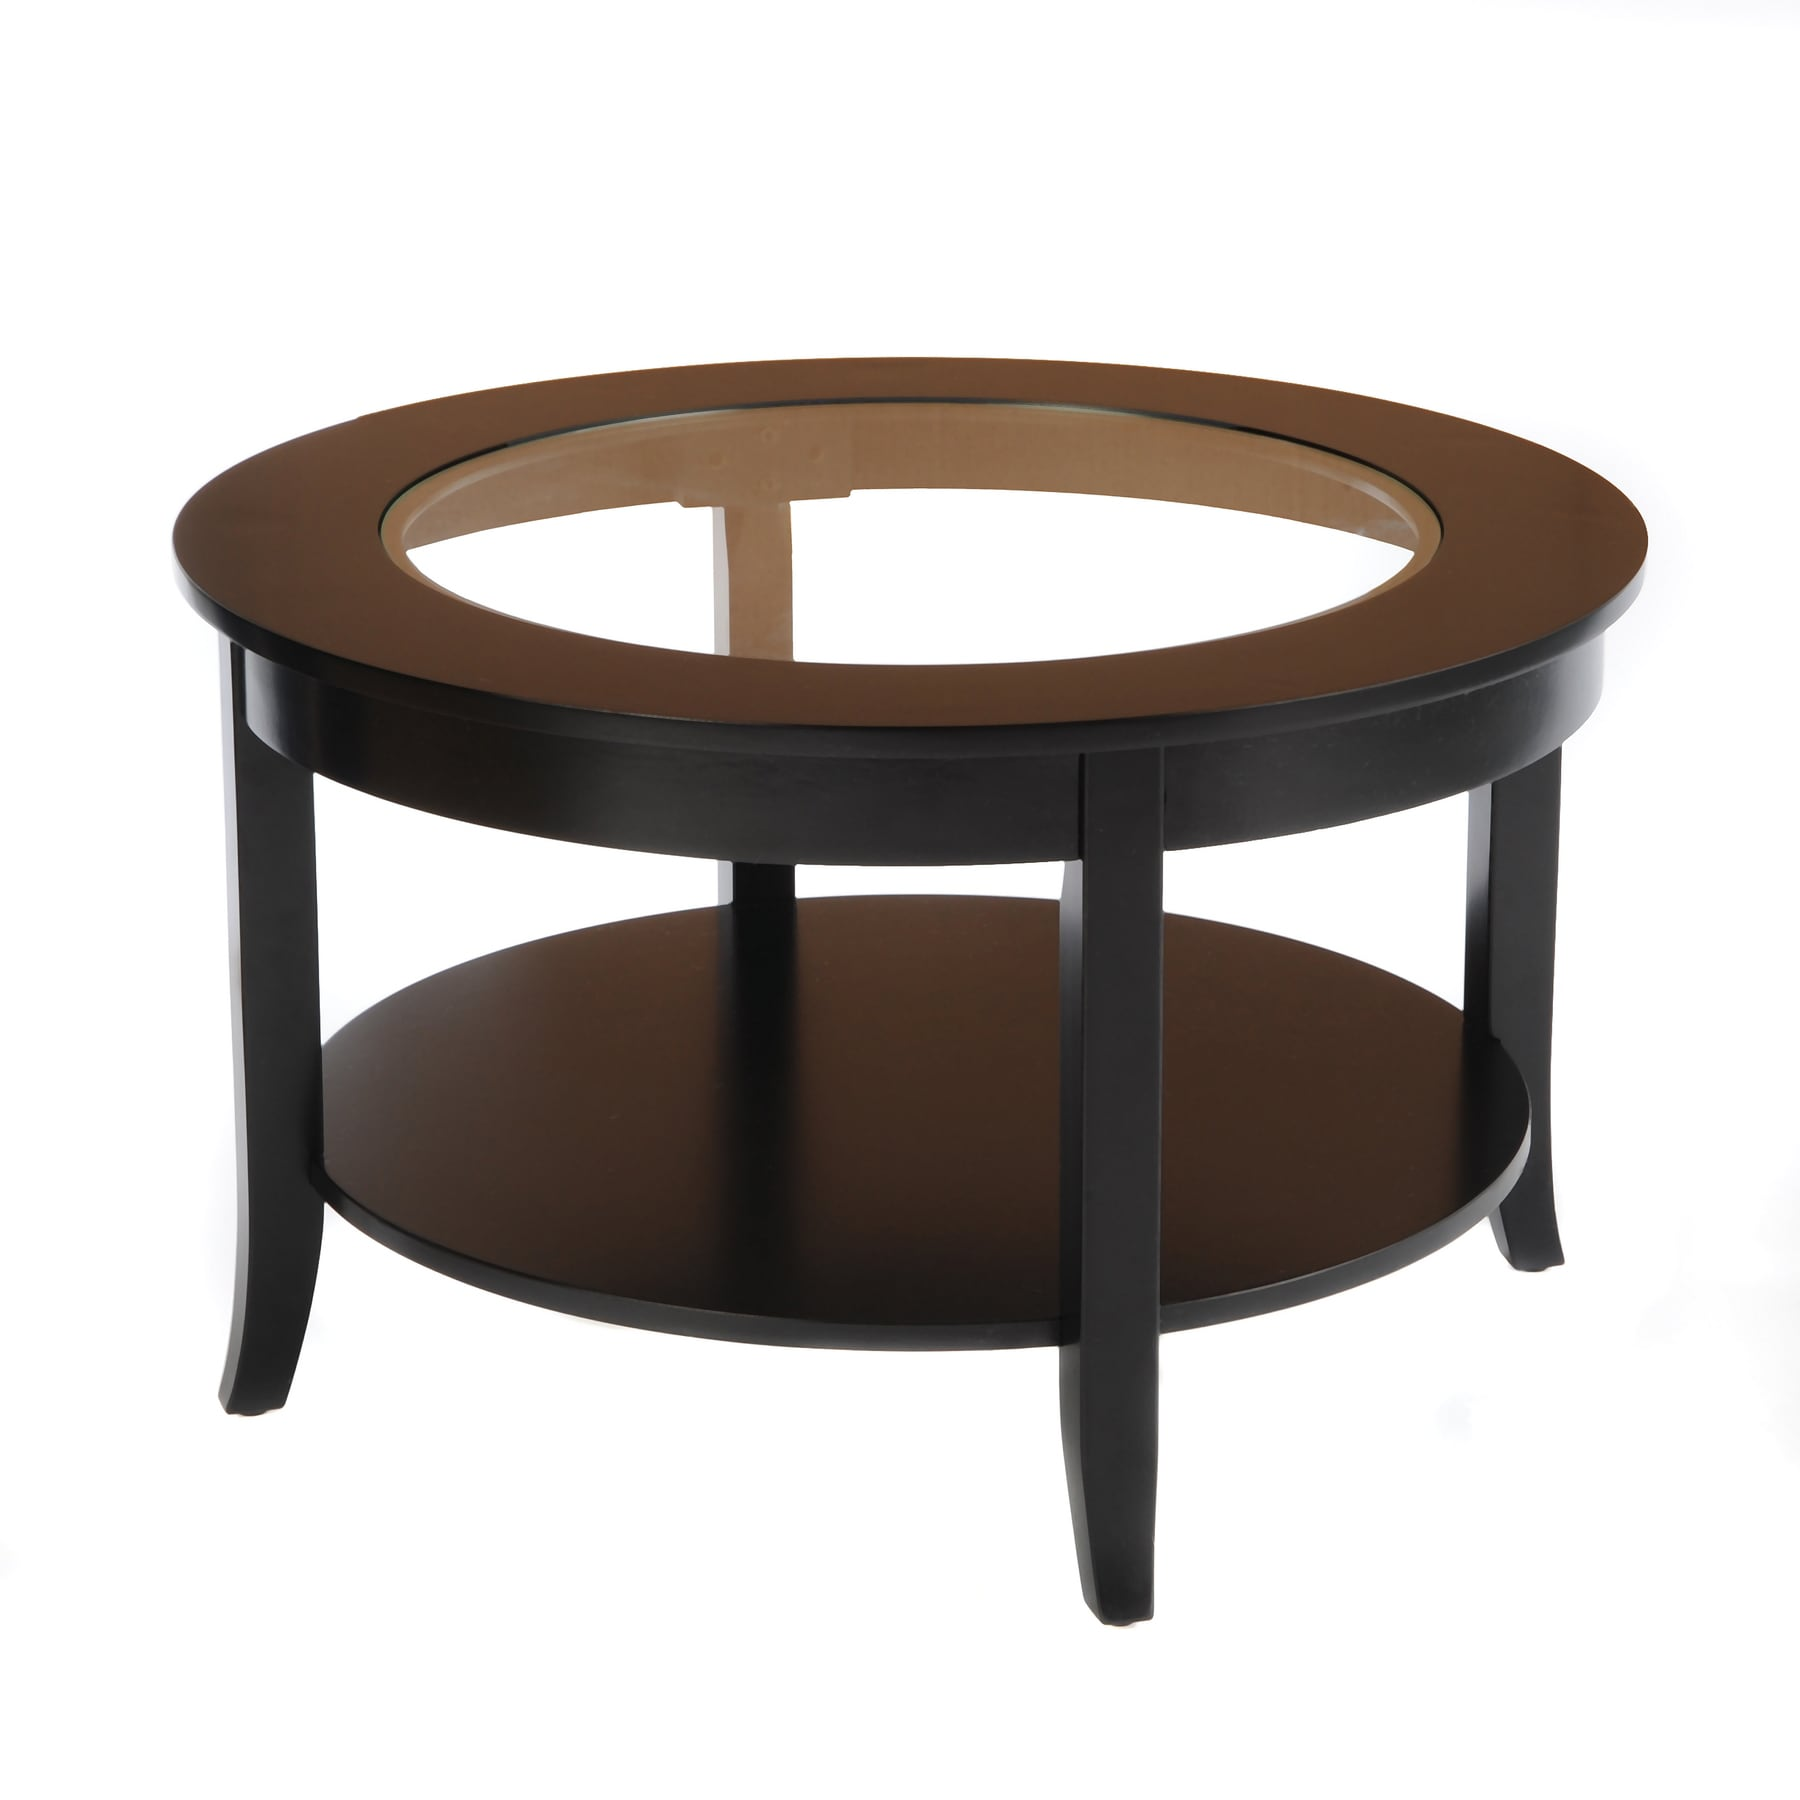 Bianco Collection Black 30 Inch Round Glass Top Coffee Table Overstock Shopping Great Deals